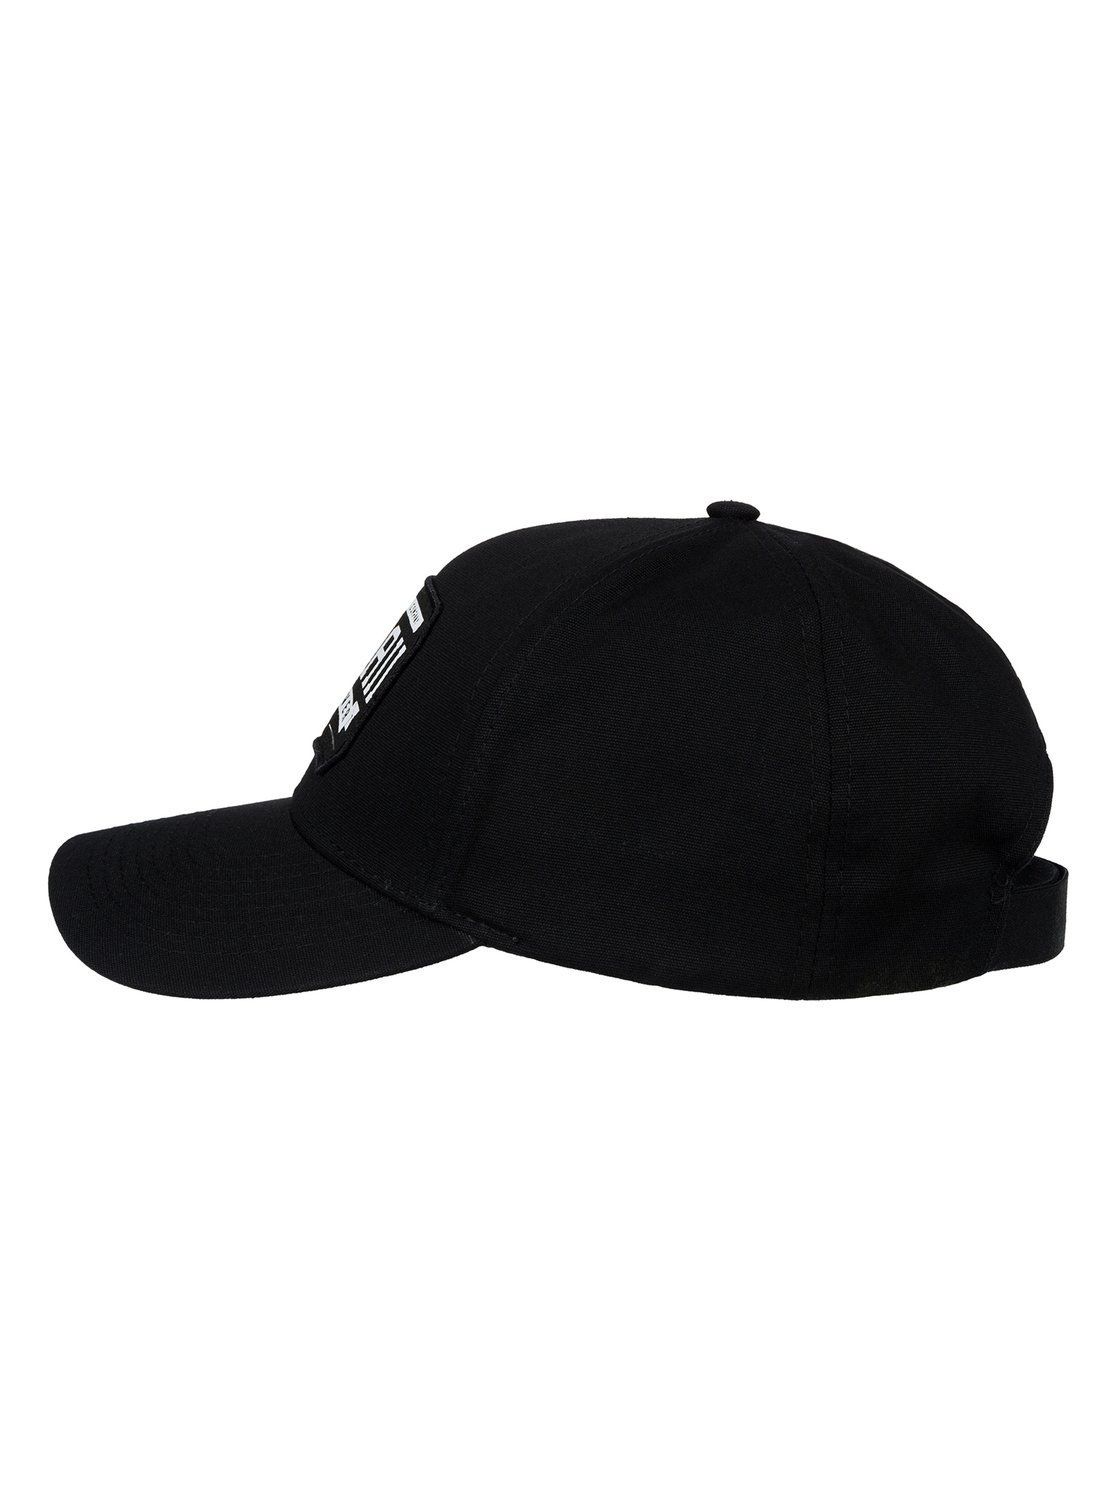 Stale fish hat aqyha00278 quiksilver for High hat fish